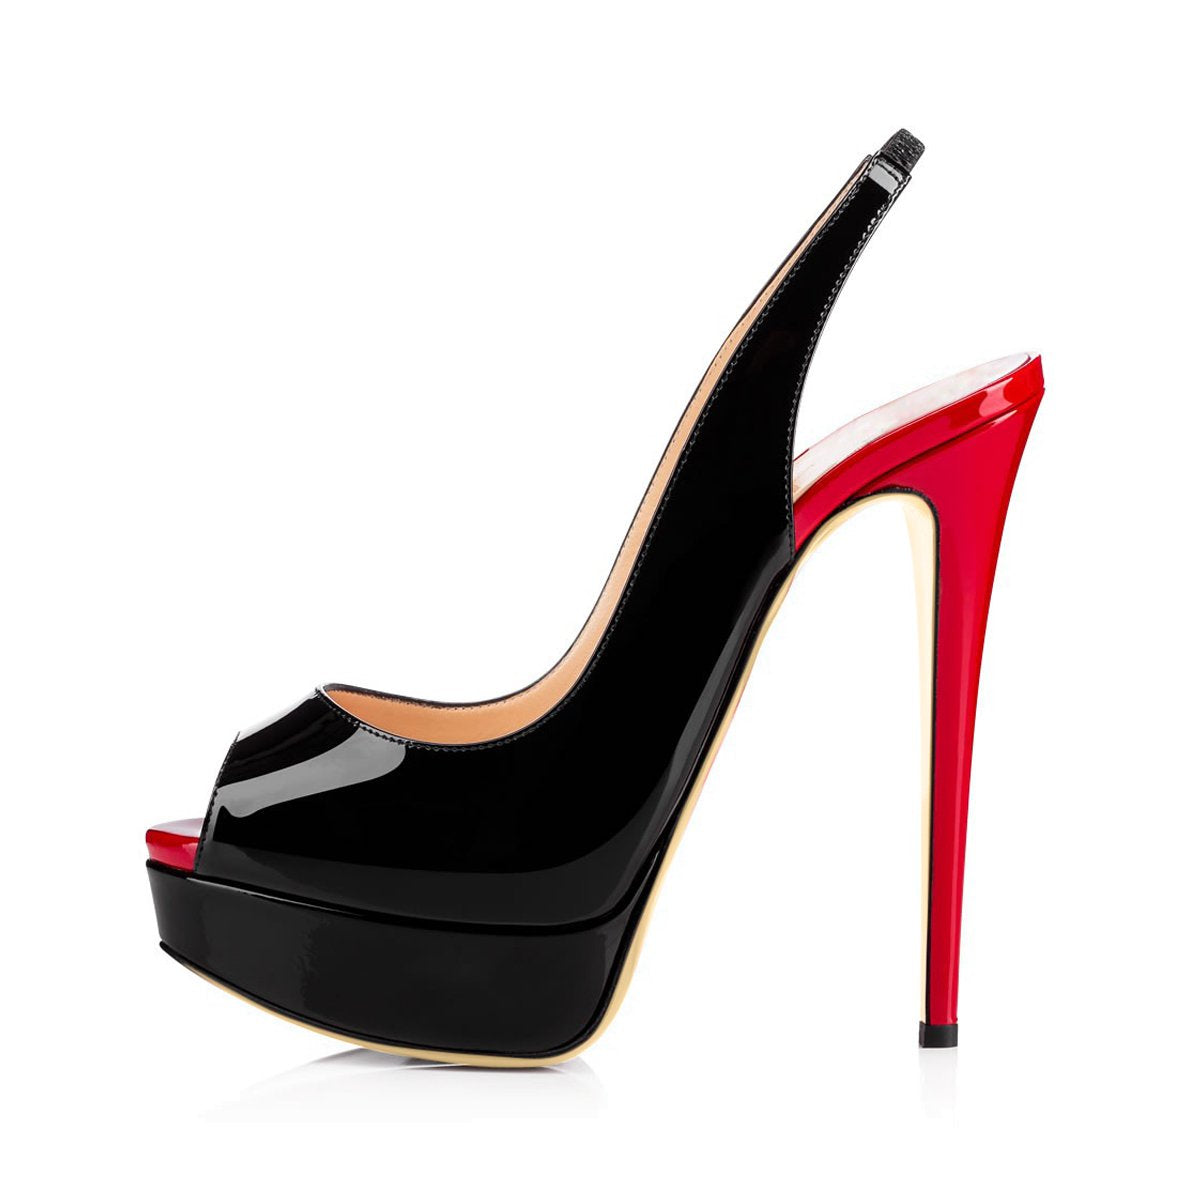 Platform High Heel Peep Toe Black-Red Slingback Sandals